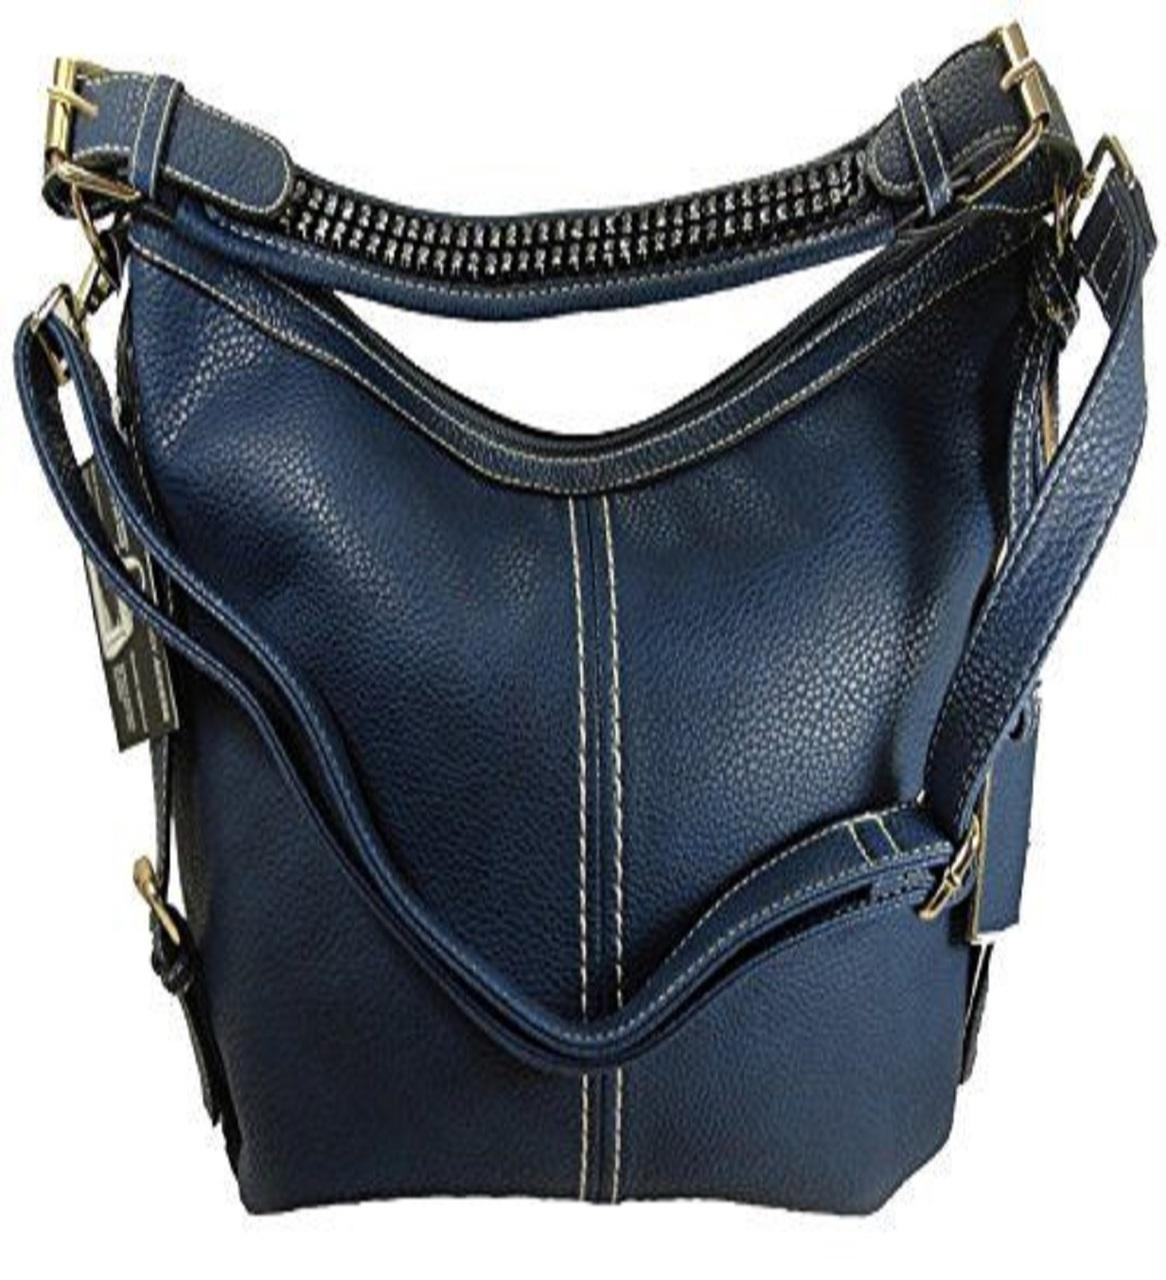 """Lisa"" Women's Blue Vegan Leather Concealed Handbag has an actual Holster that means no printing on your purse. No printing with this included gun holster for your leather concealed handbag."